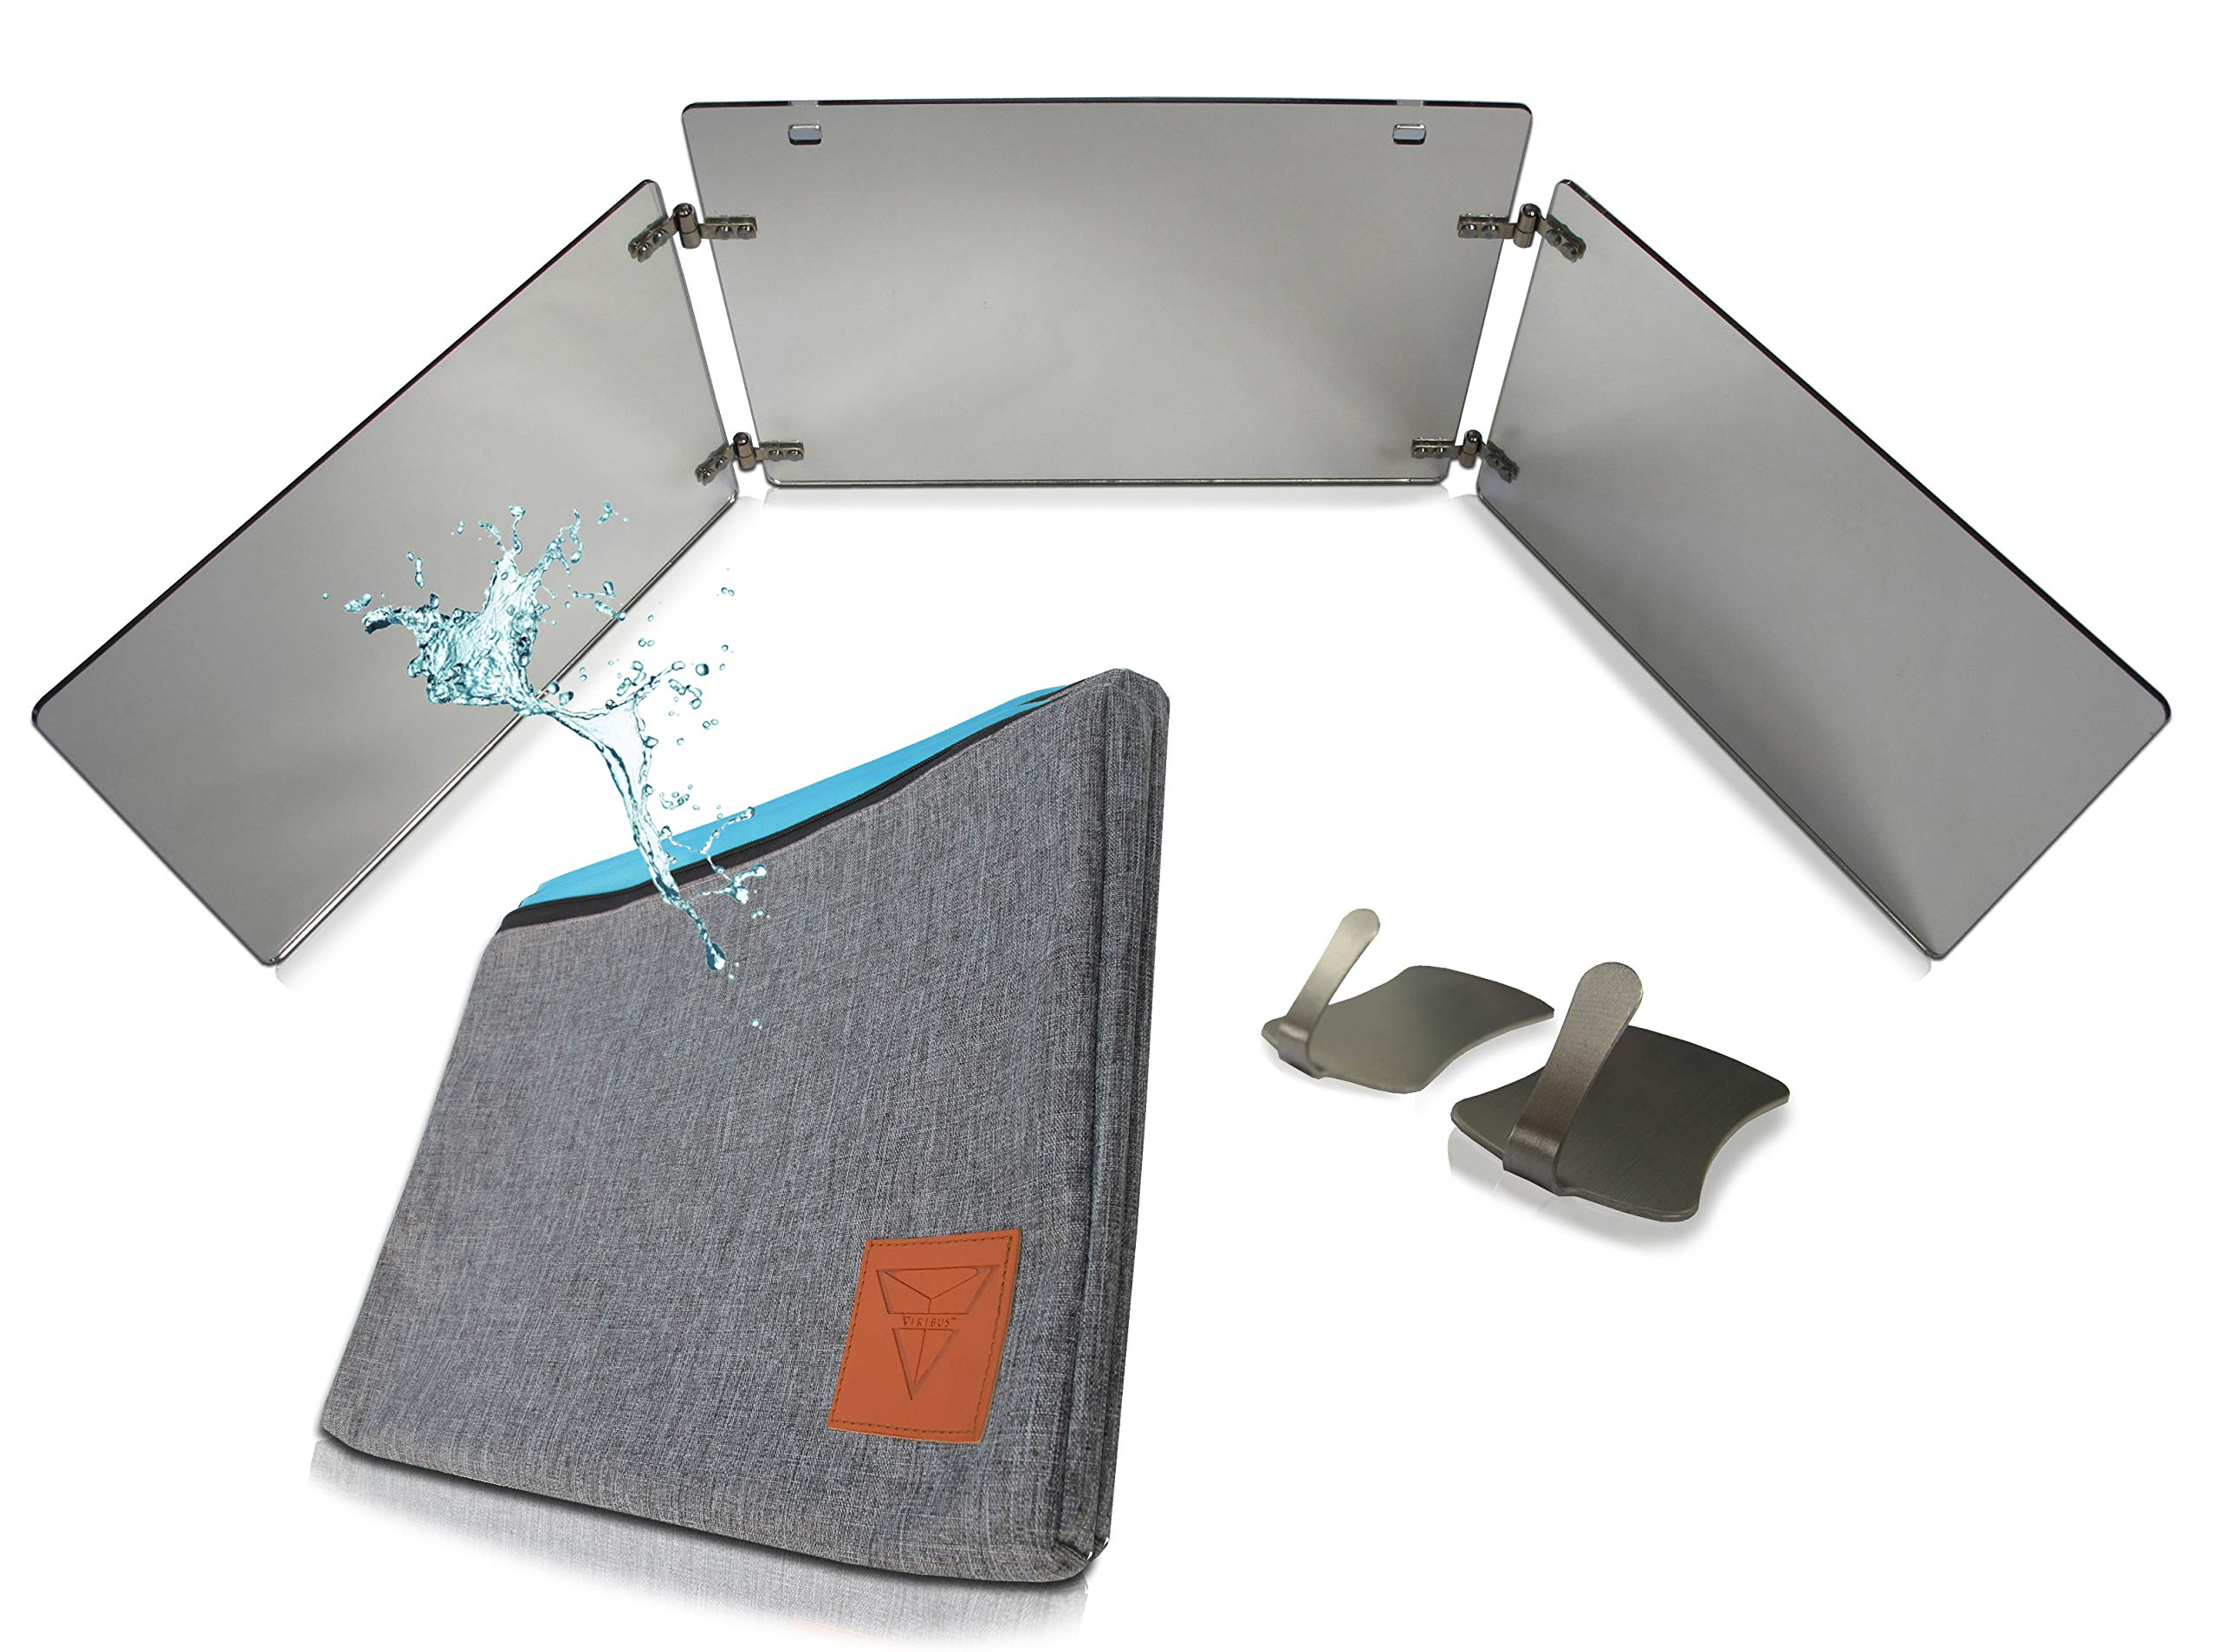 GAT Trifold Mirror - 3 way mirror used for Self Hair Cutting, Fogless Shaving in the Shower, Makeup, Hair styling and Coloring. The perfect travel mirror. G.A.T. -''Go Anywhere Tri fold'' by Viribus.